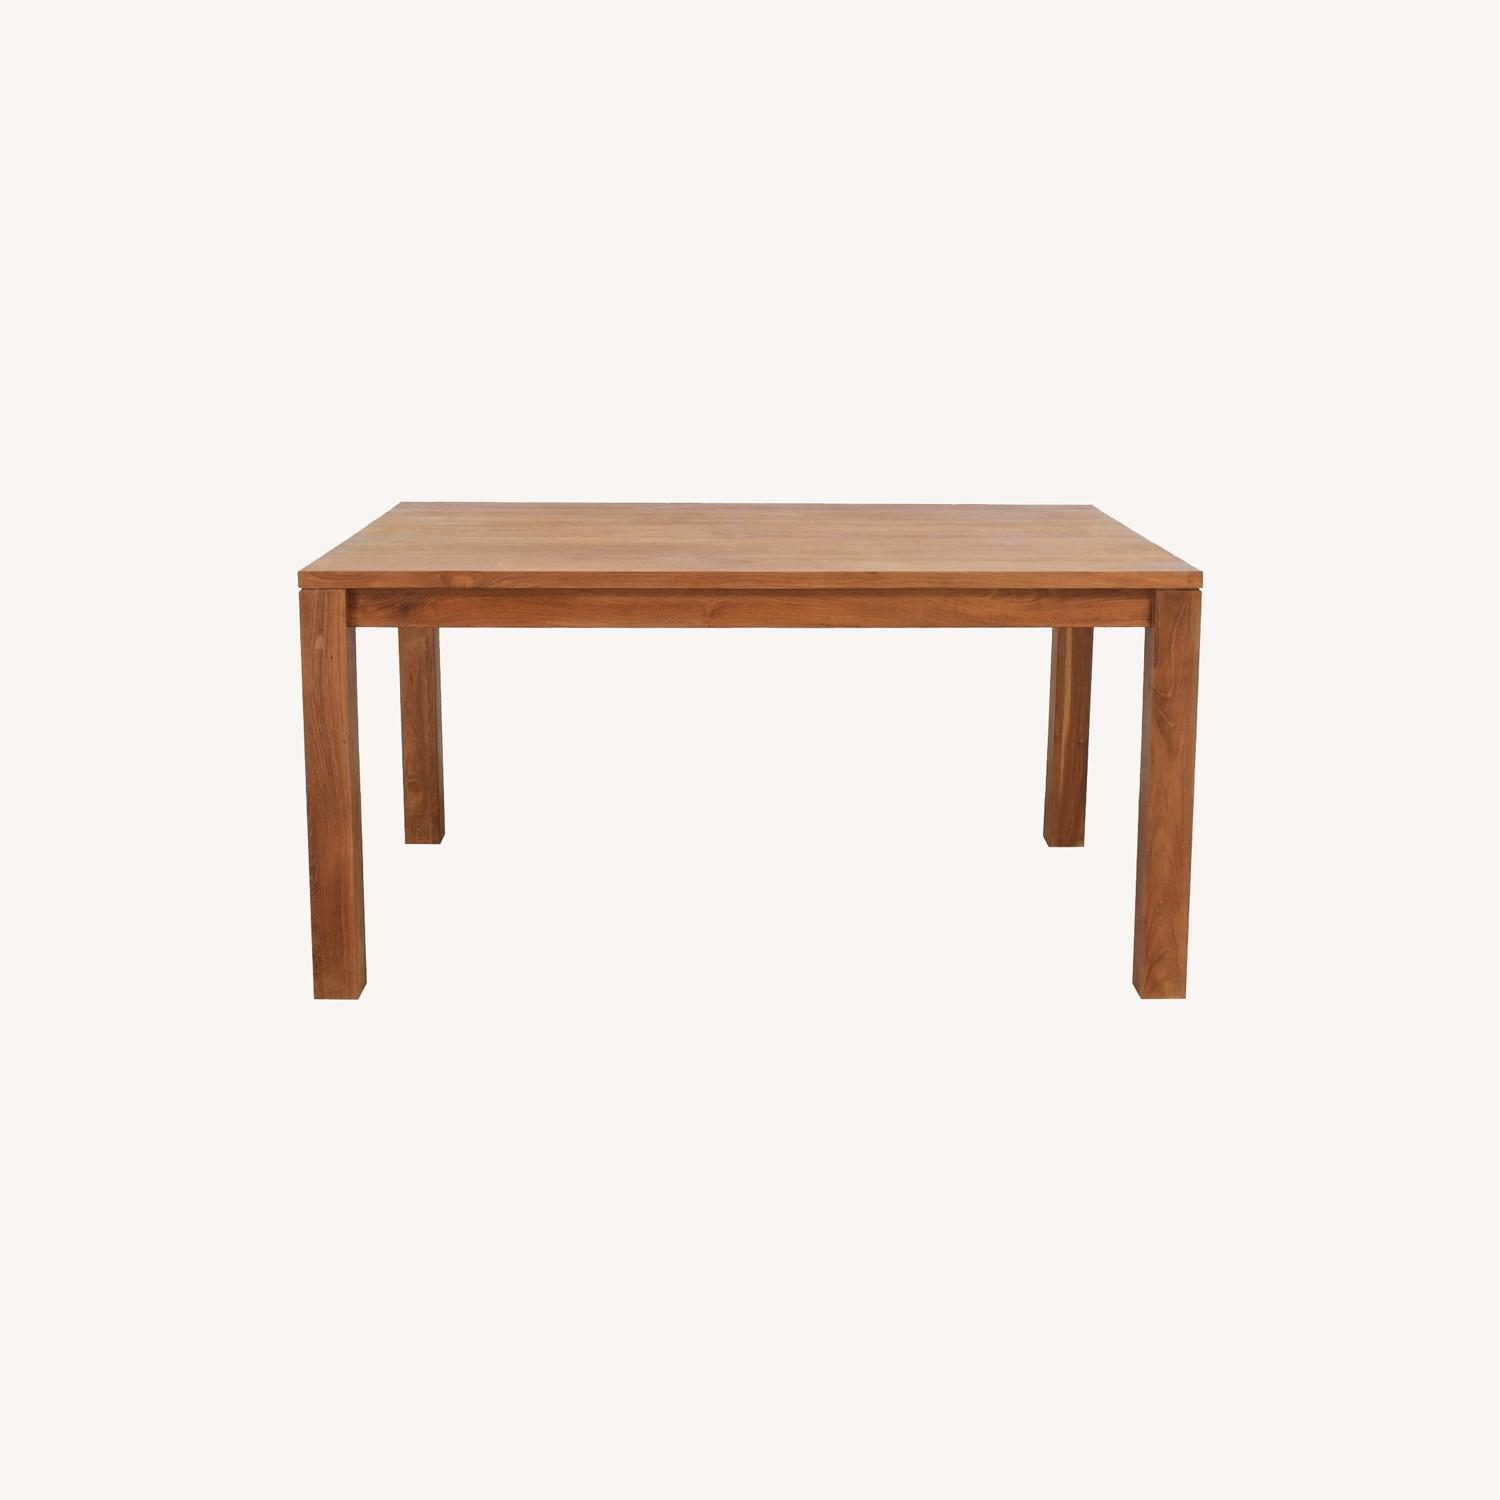 Crate & Barrel Pacifica Dining Table - image-0